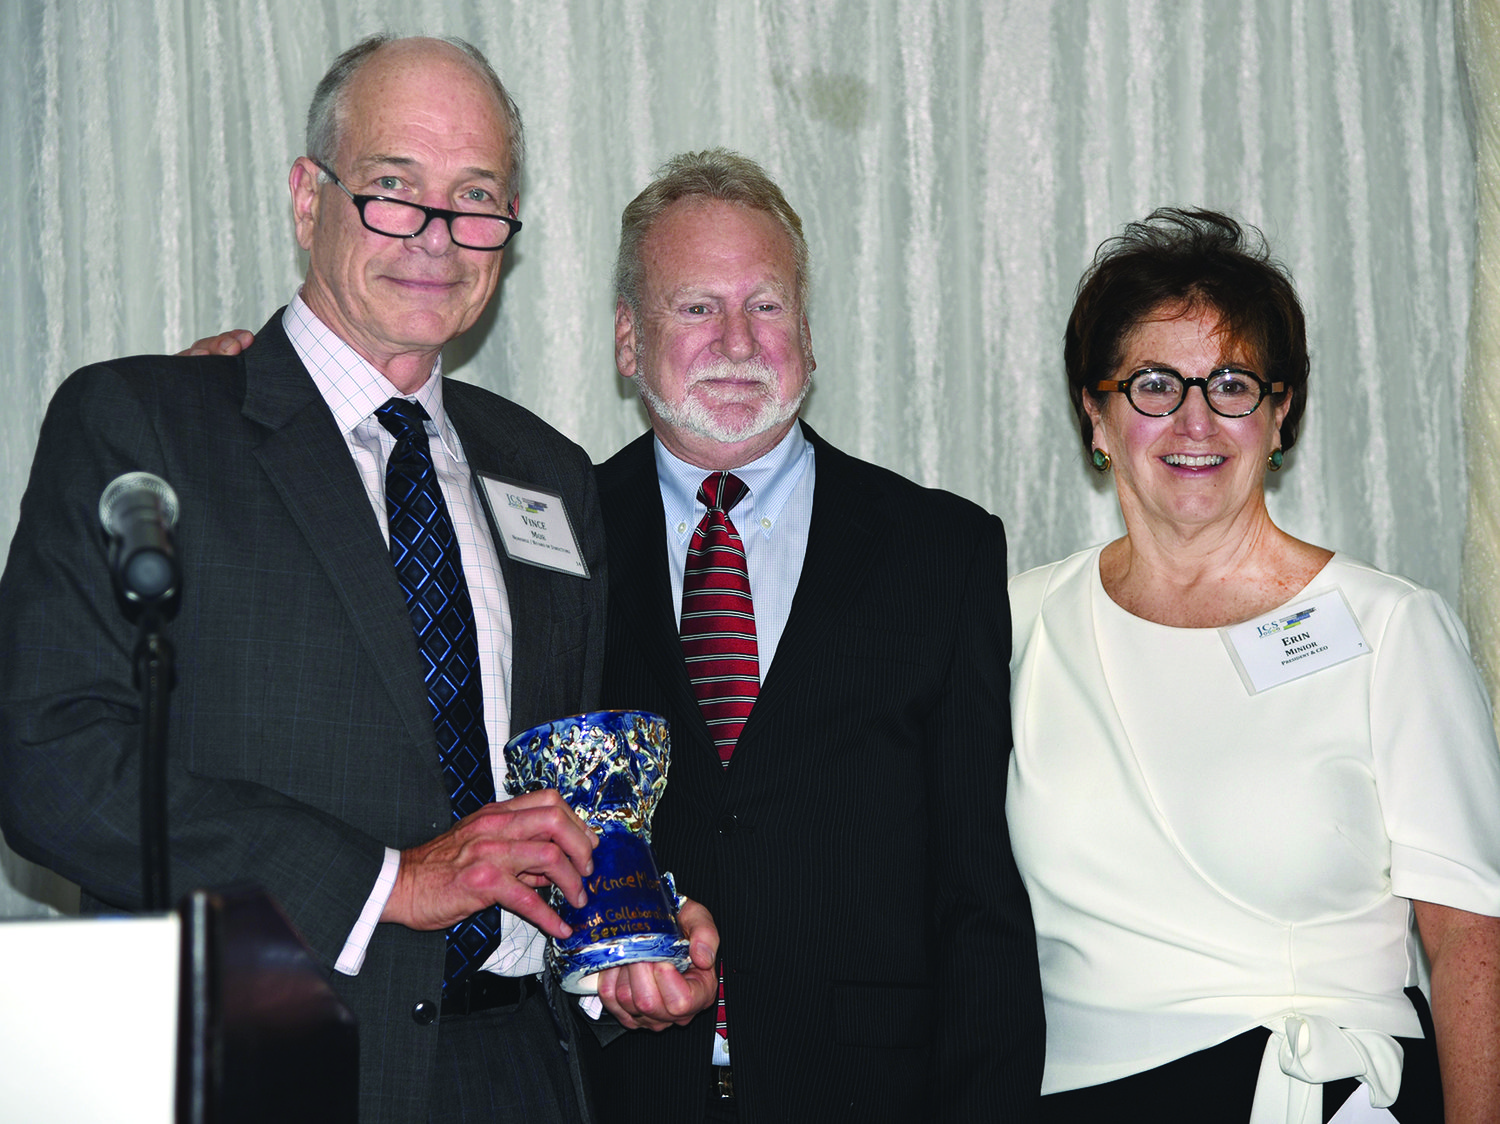 Award winner (left to right): Vince Mor, recipient of The Maurice Glicksman Leadership Award with Jim Galkin, and Erin Minior.